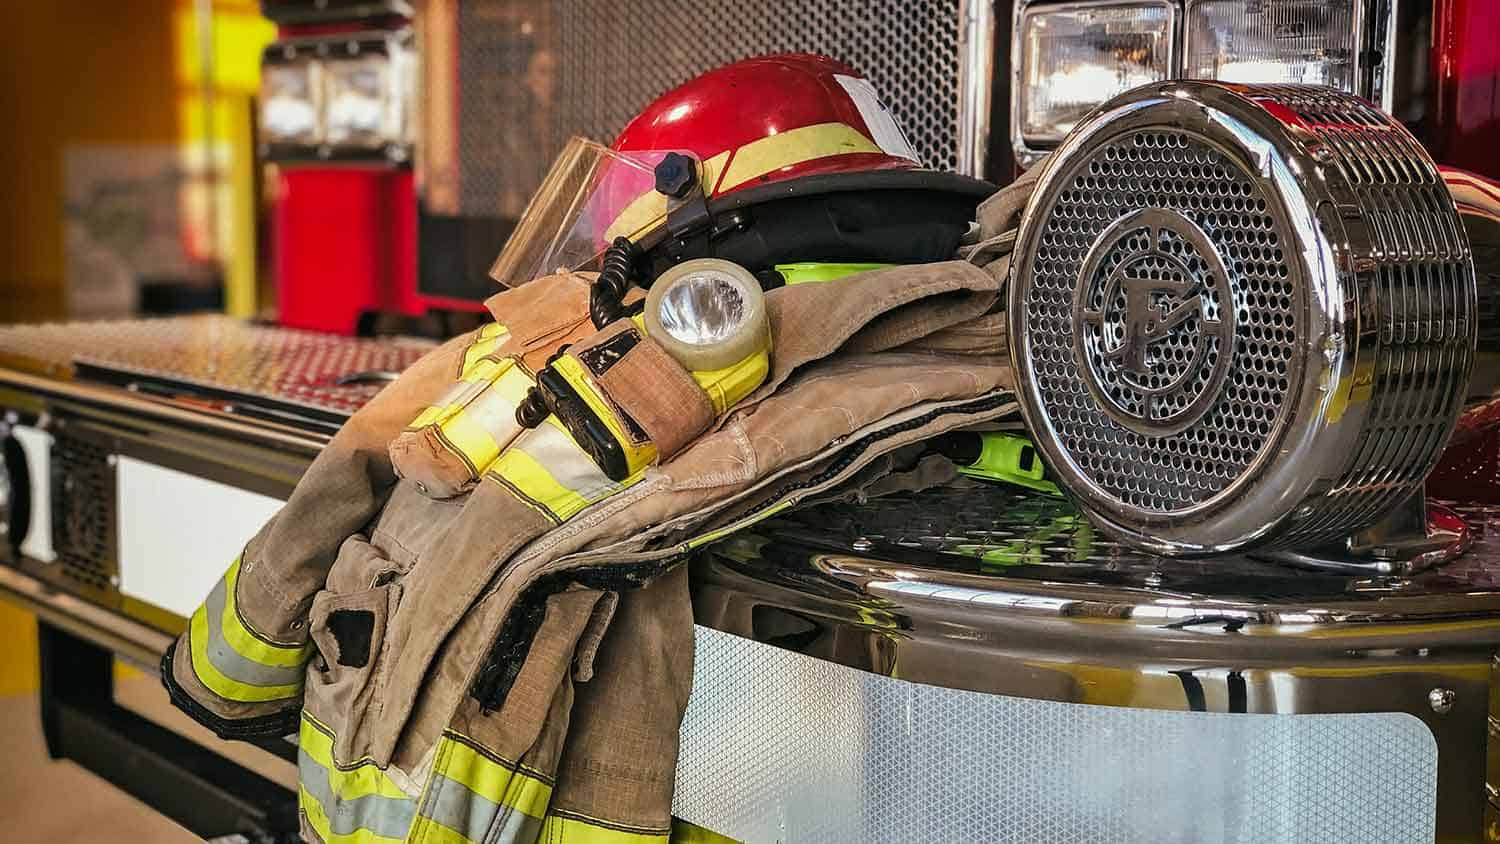 Fire mans uniform resting on the side of a fire engine, hat placed on top of jacket